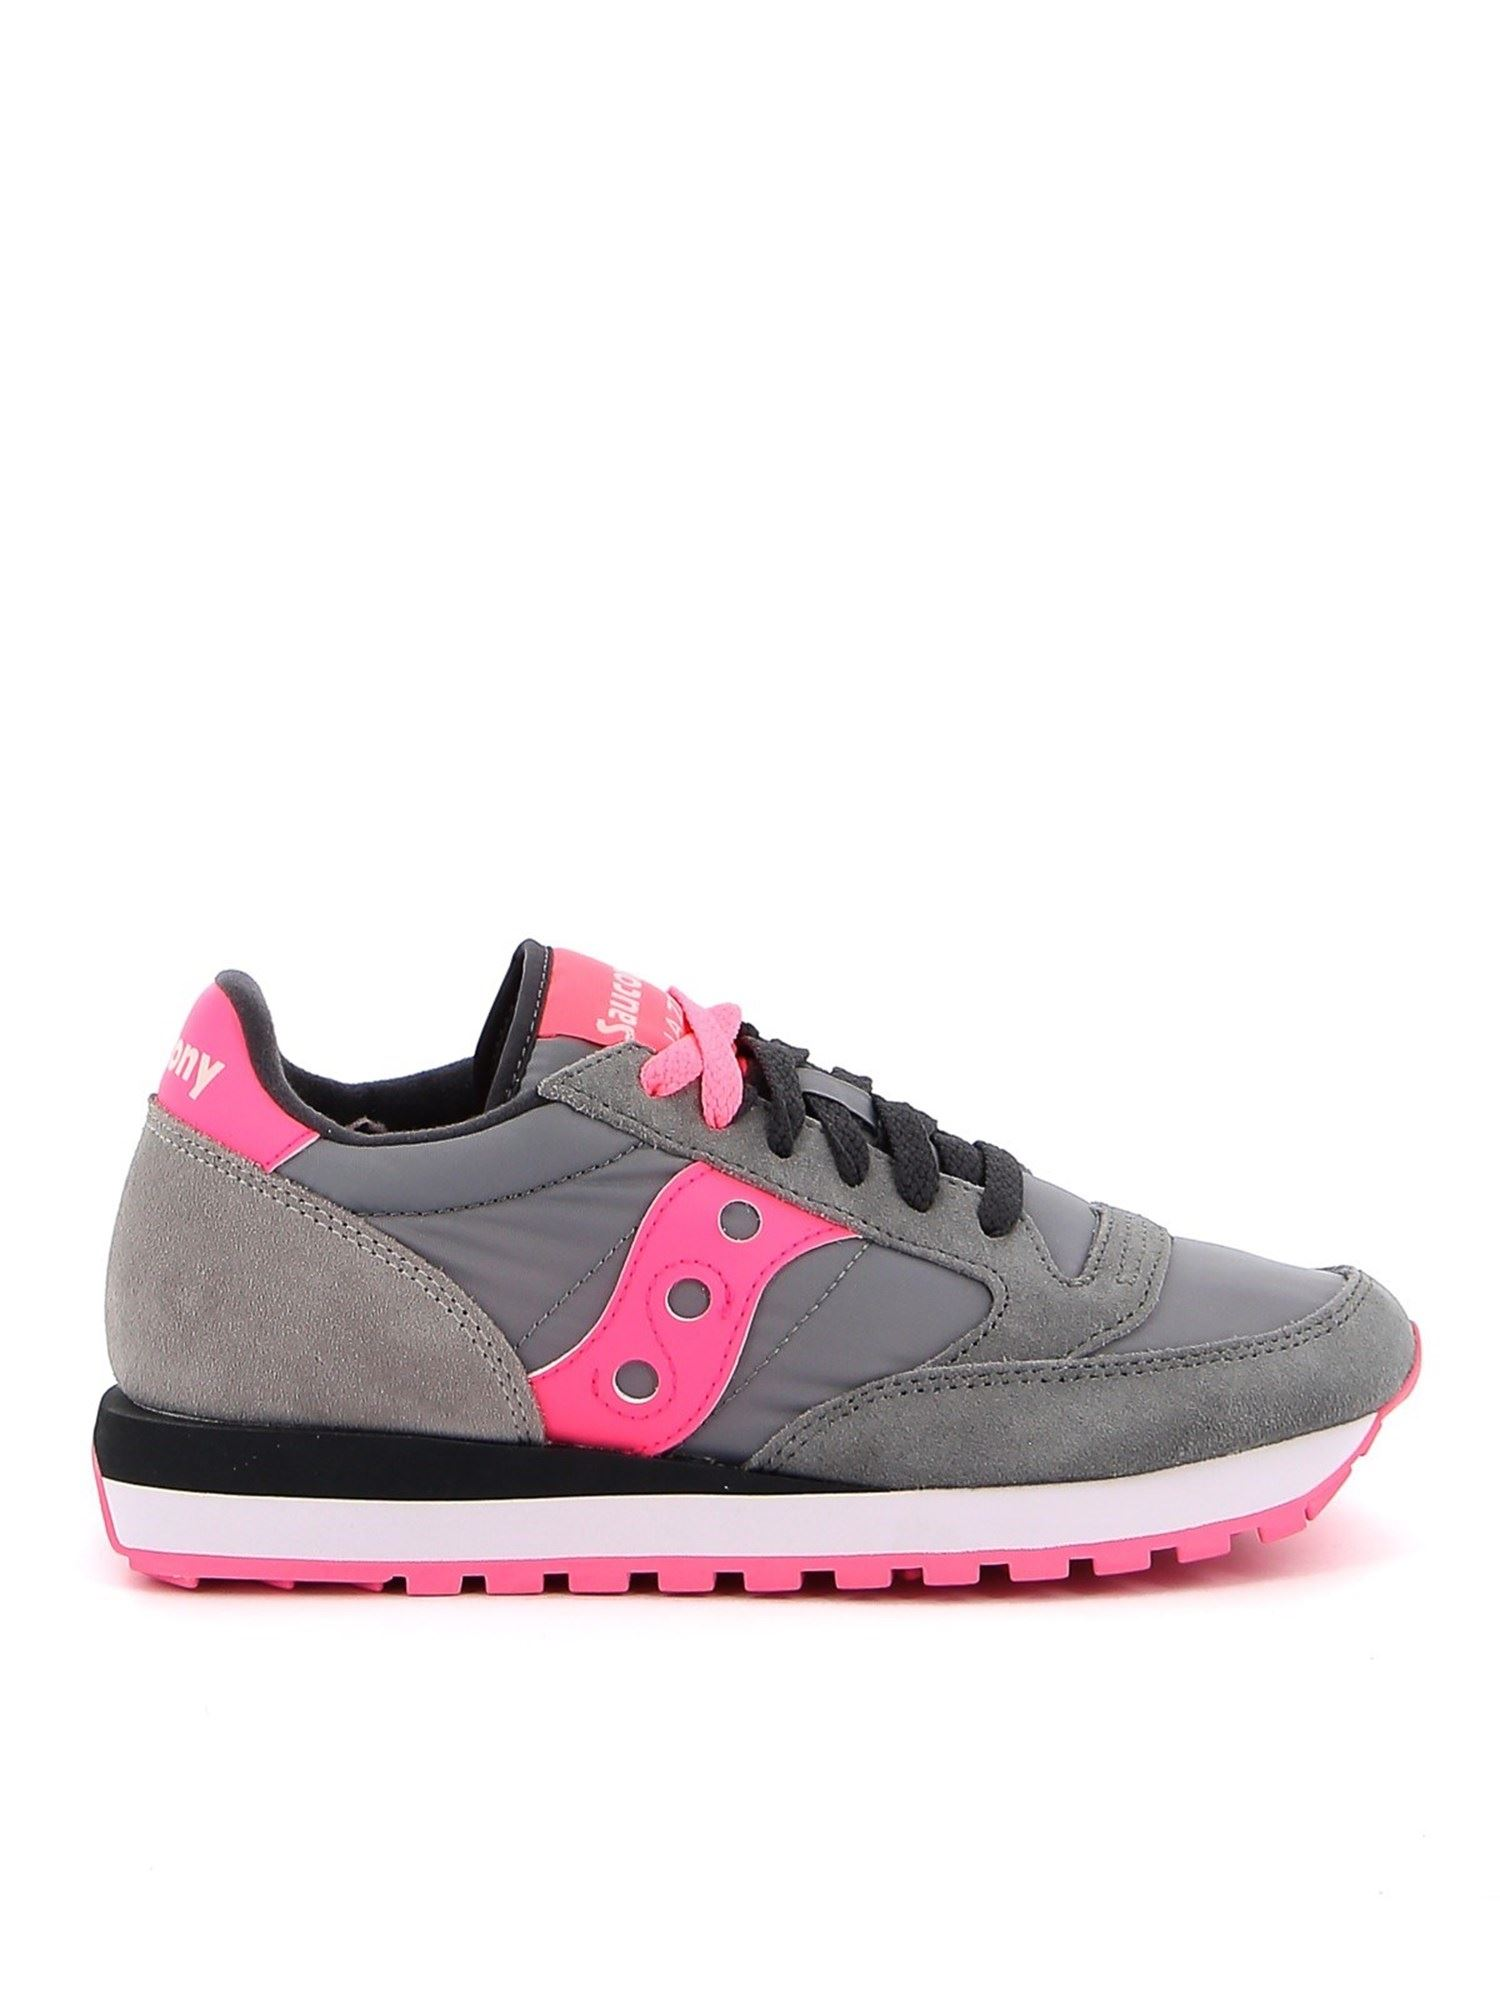 Saucony JAZZ ORIGINAL SNEAKERS IN GREY